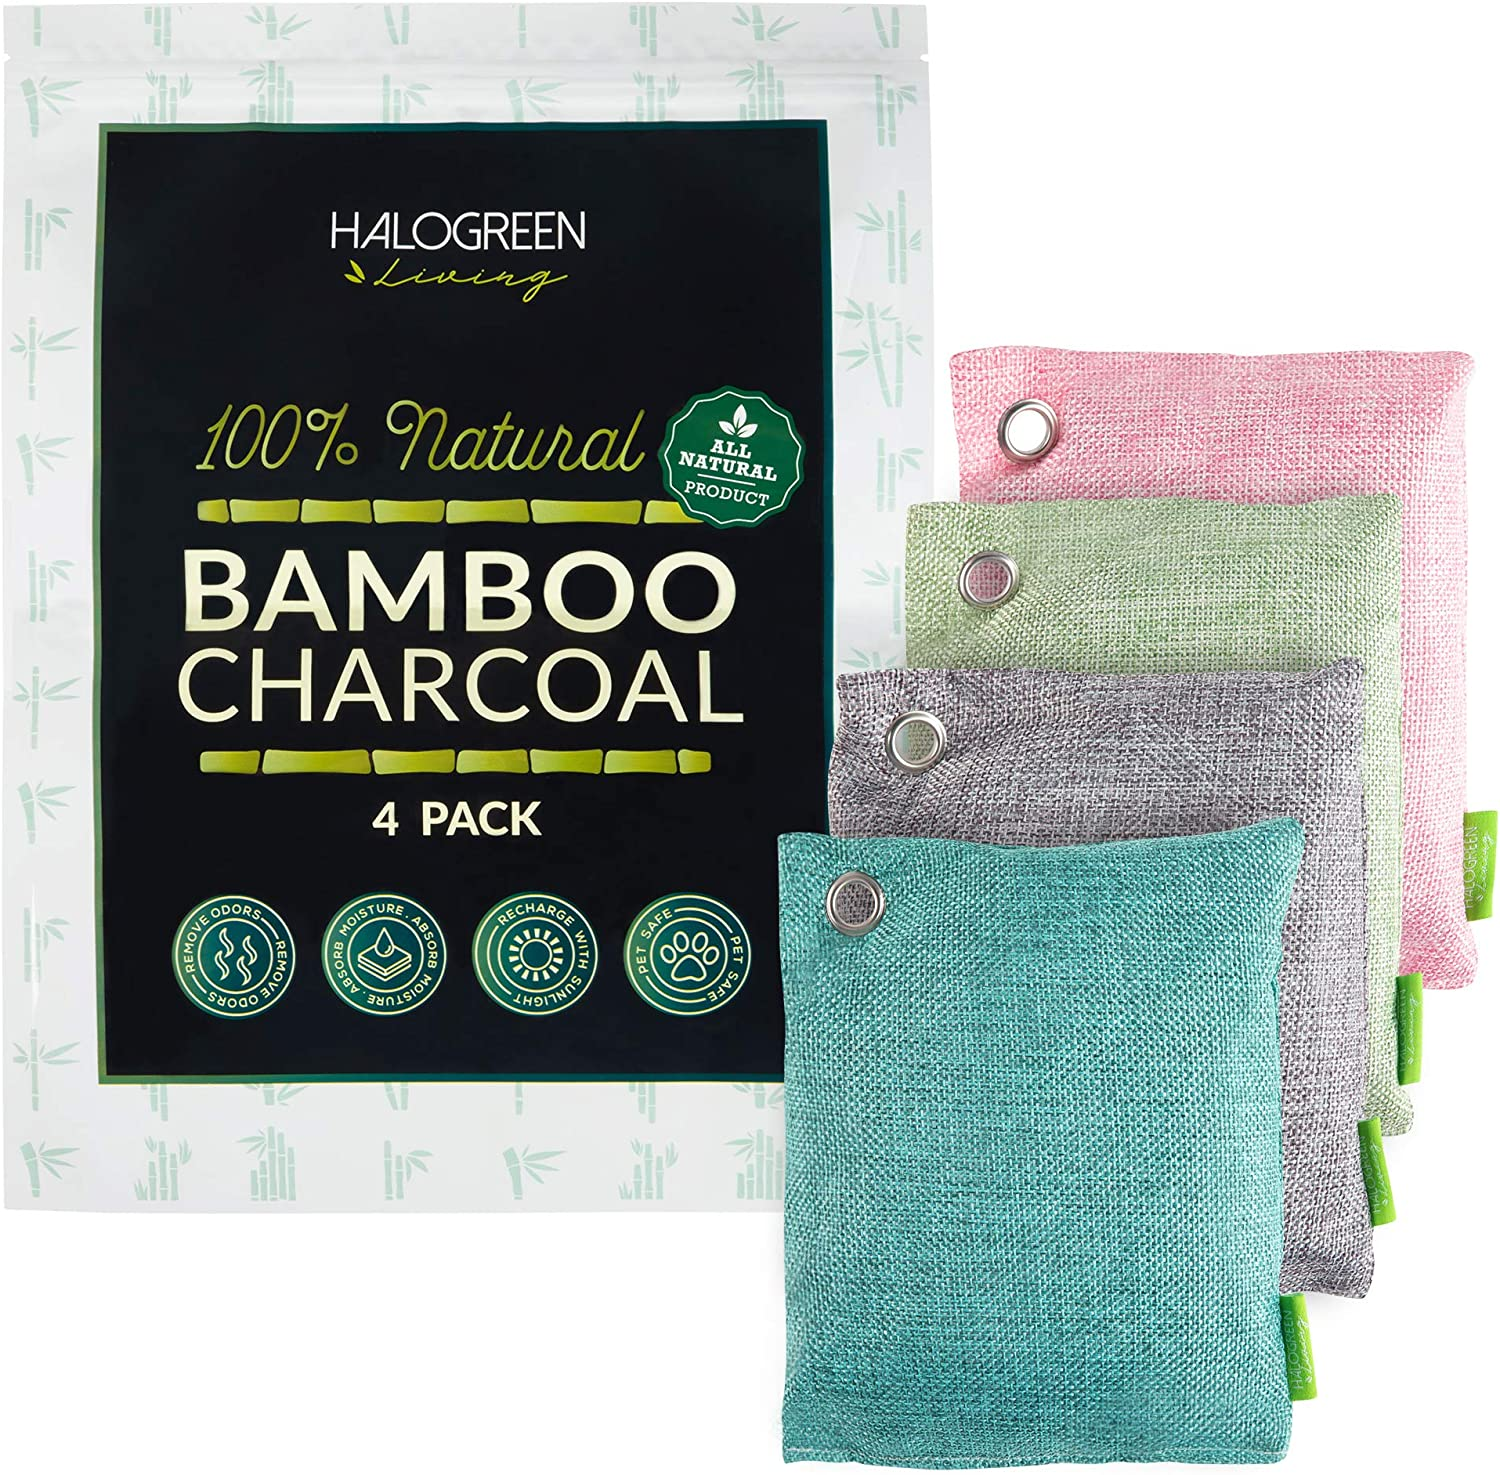 HALOGREEN LIVING trend rank Activated New Shipping Free Bamboo Charcoal - Air Purifying N Bag